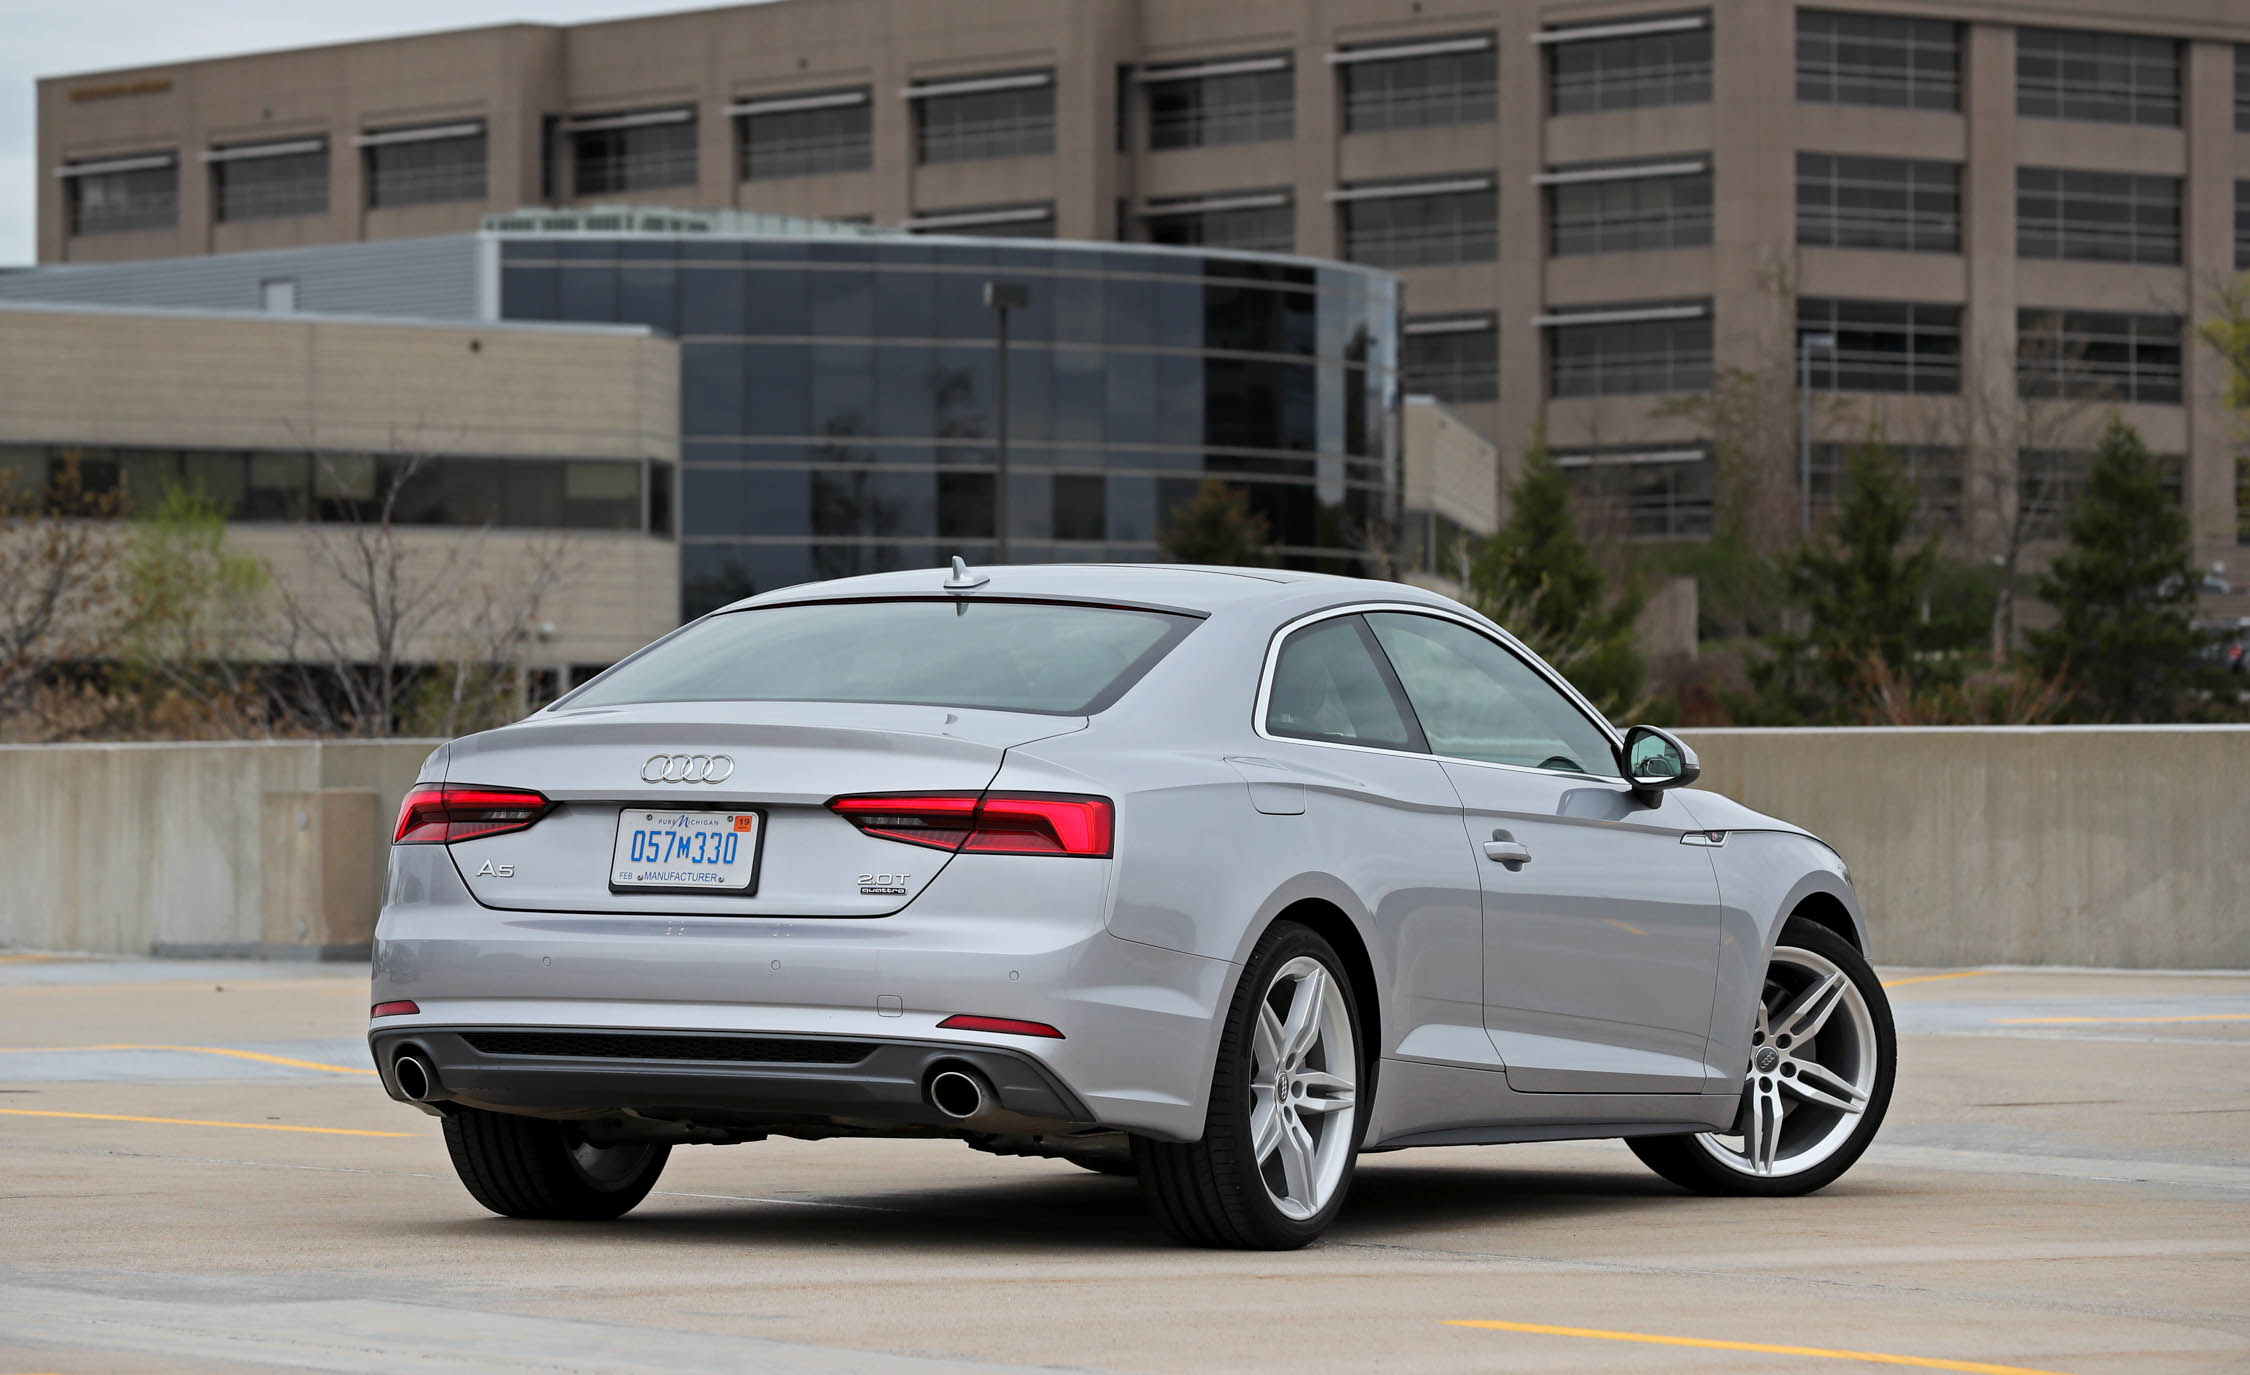 2018 Audi A5 Coupe Exterior Rear And Side (Photo 5 of 50)